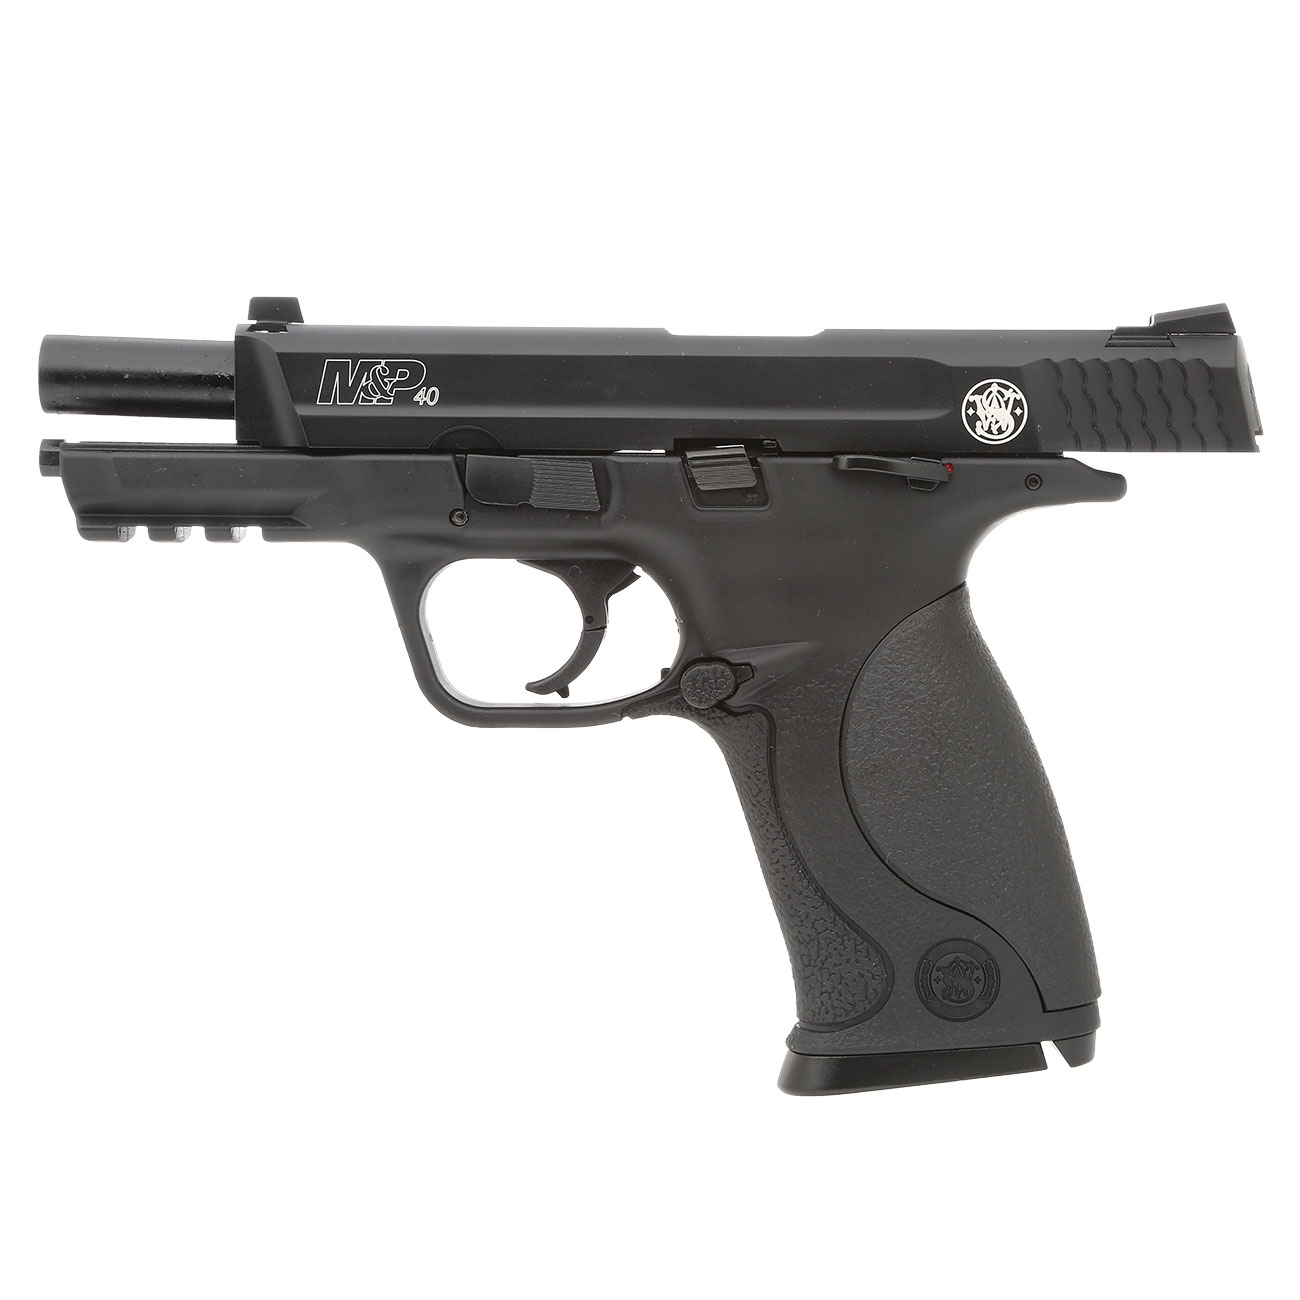 KWC Smith & Wesson M&P40 TS mit Metallschlitten CO2 BlowBack 6mm BB schwarz 2